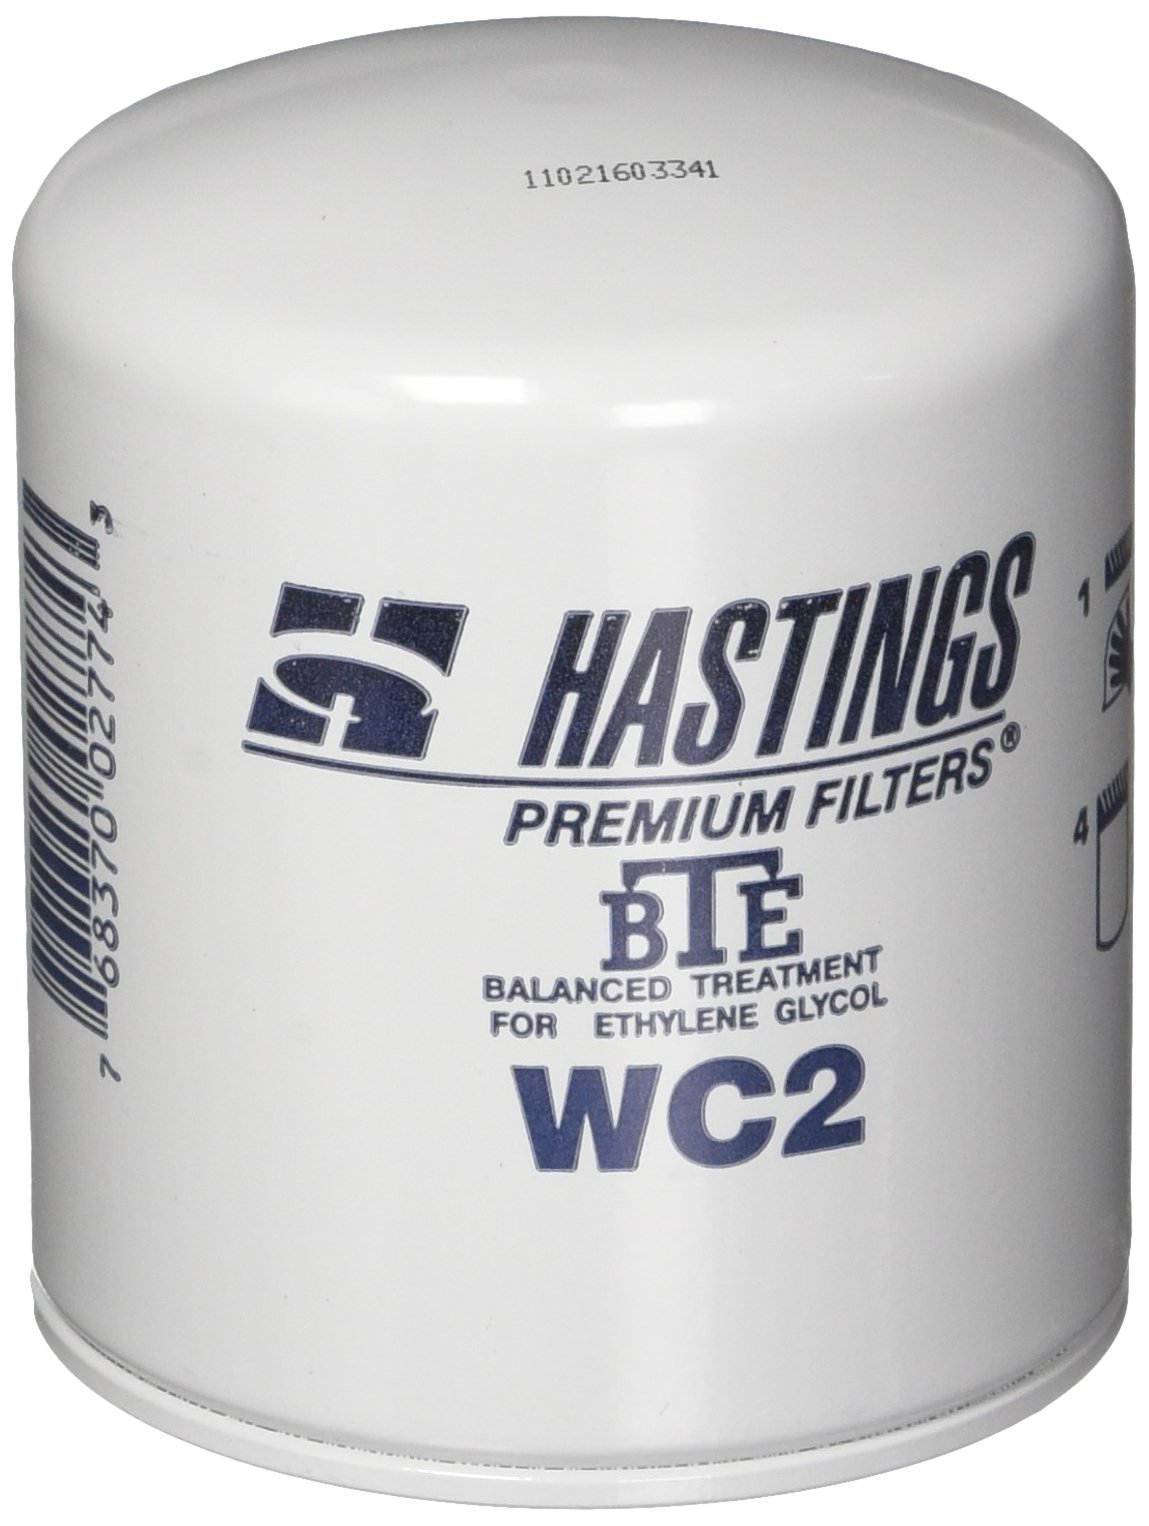 Hastings WC2 Coolant Spin-On Filter Filter with BTE Formula